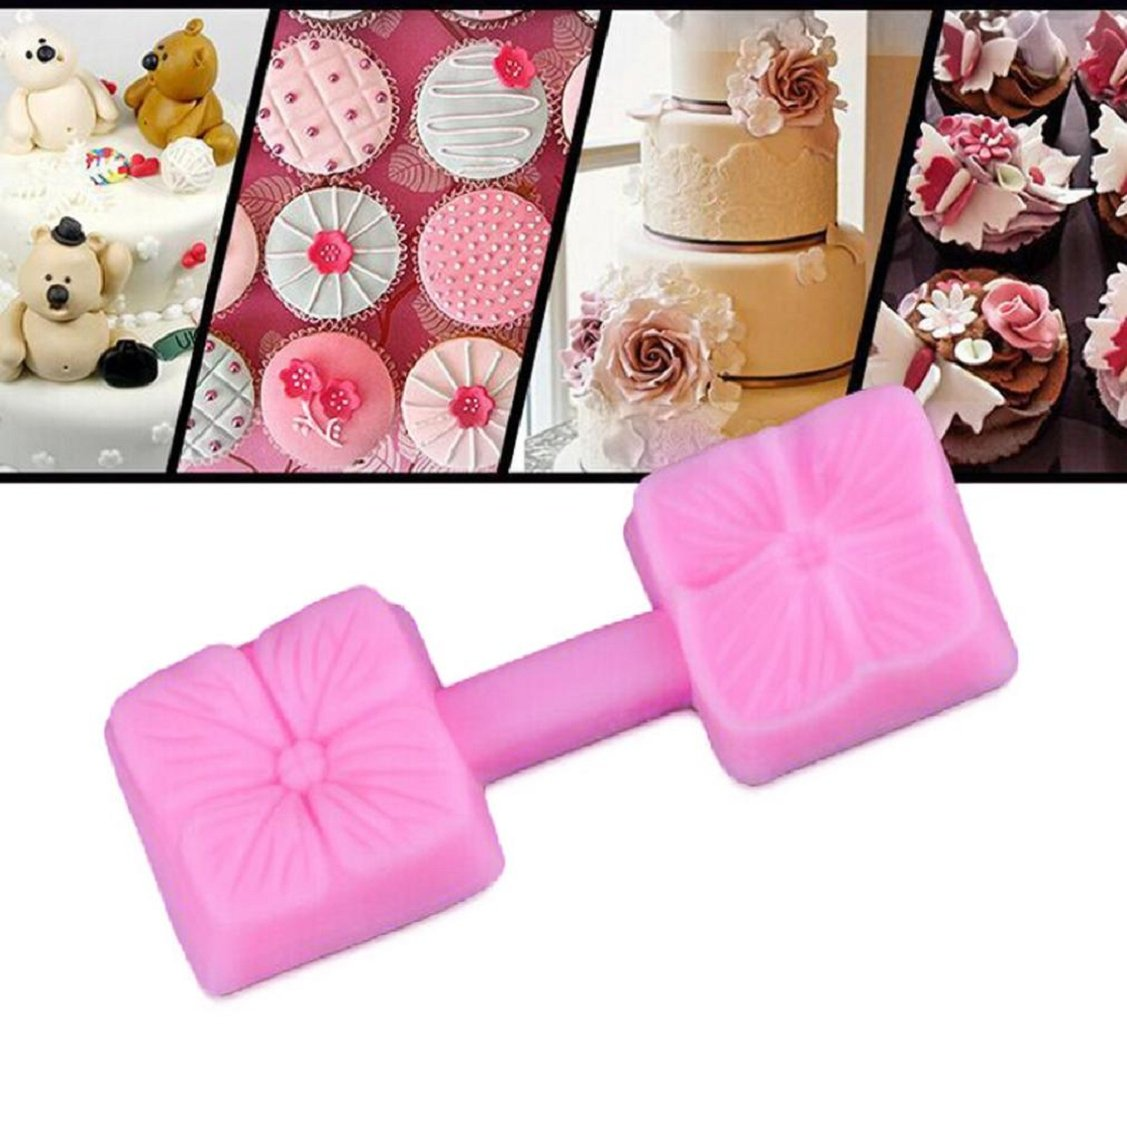 Cake Mold,Vovomay Silicone Rose Flower Fondant Cake Chocolate Sugarcraft Mould Mold Tool (A)